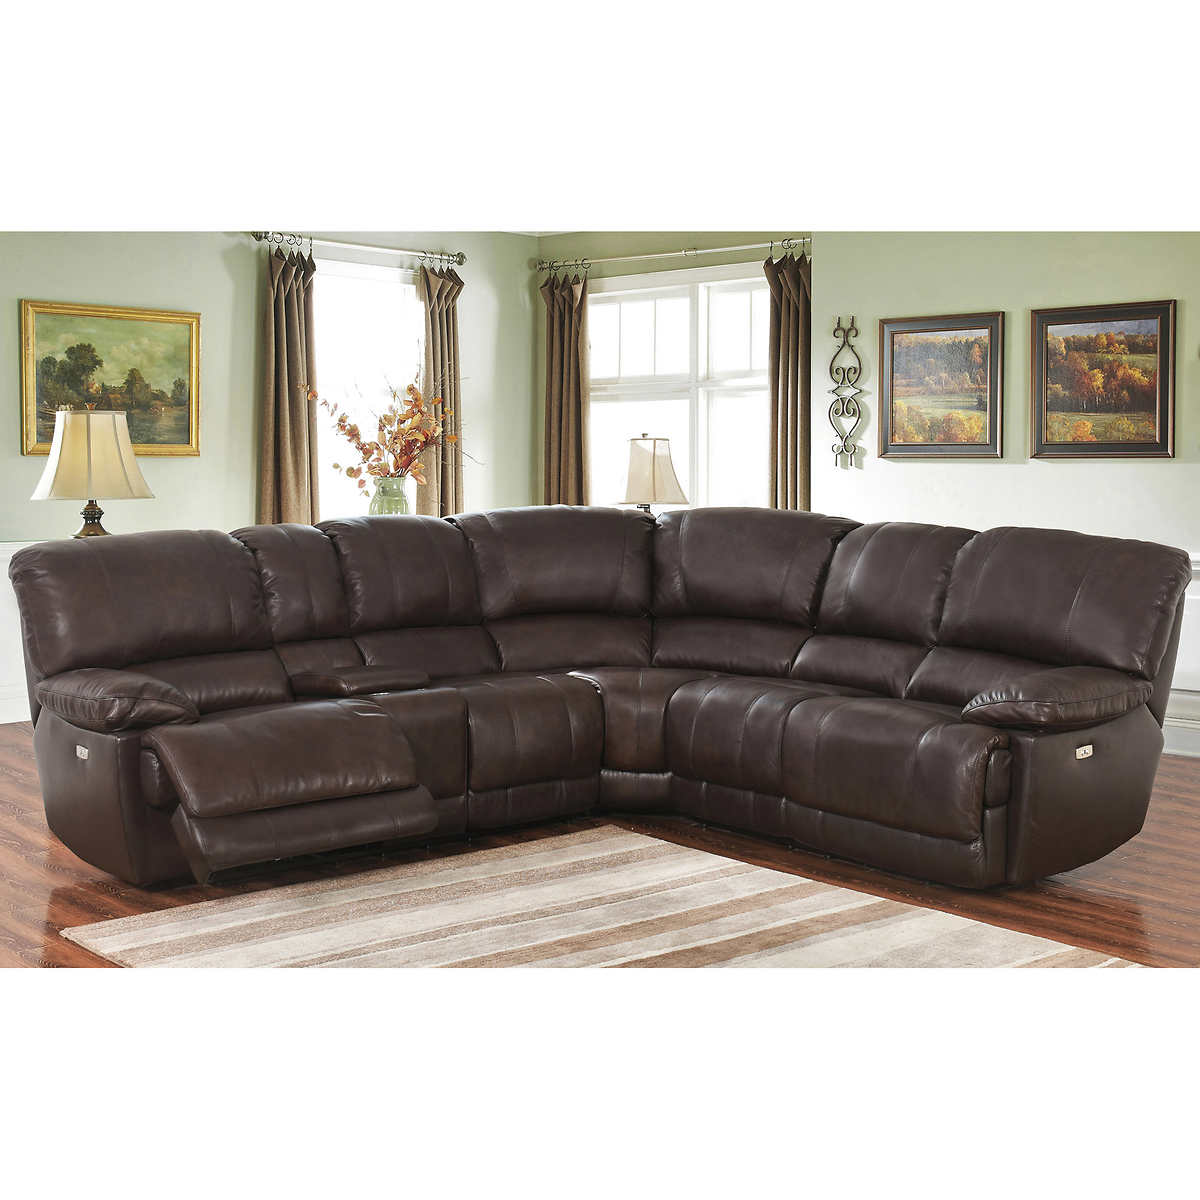 arleta top grain leather power reclining sectional. Interior Design Ideas. Home Design Ideas